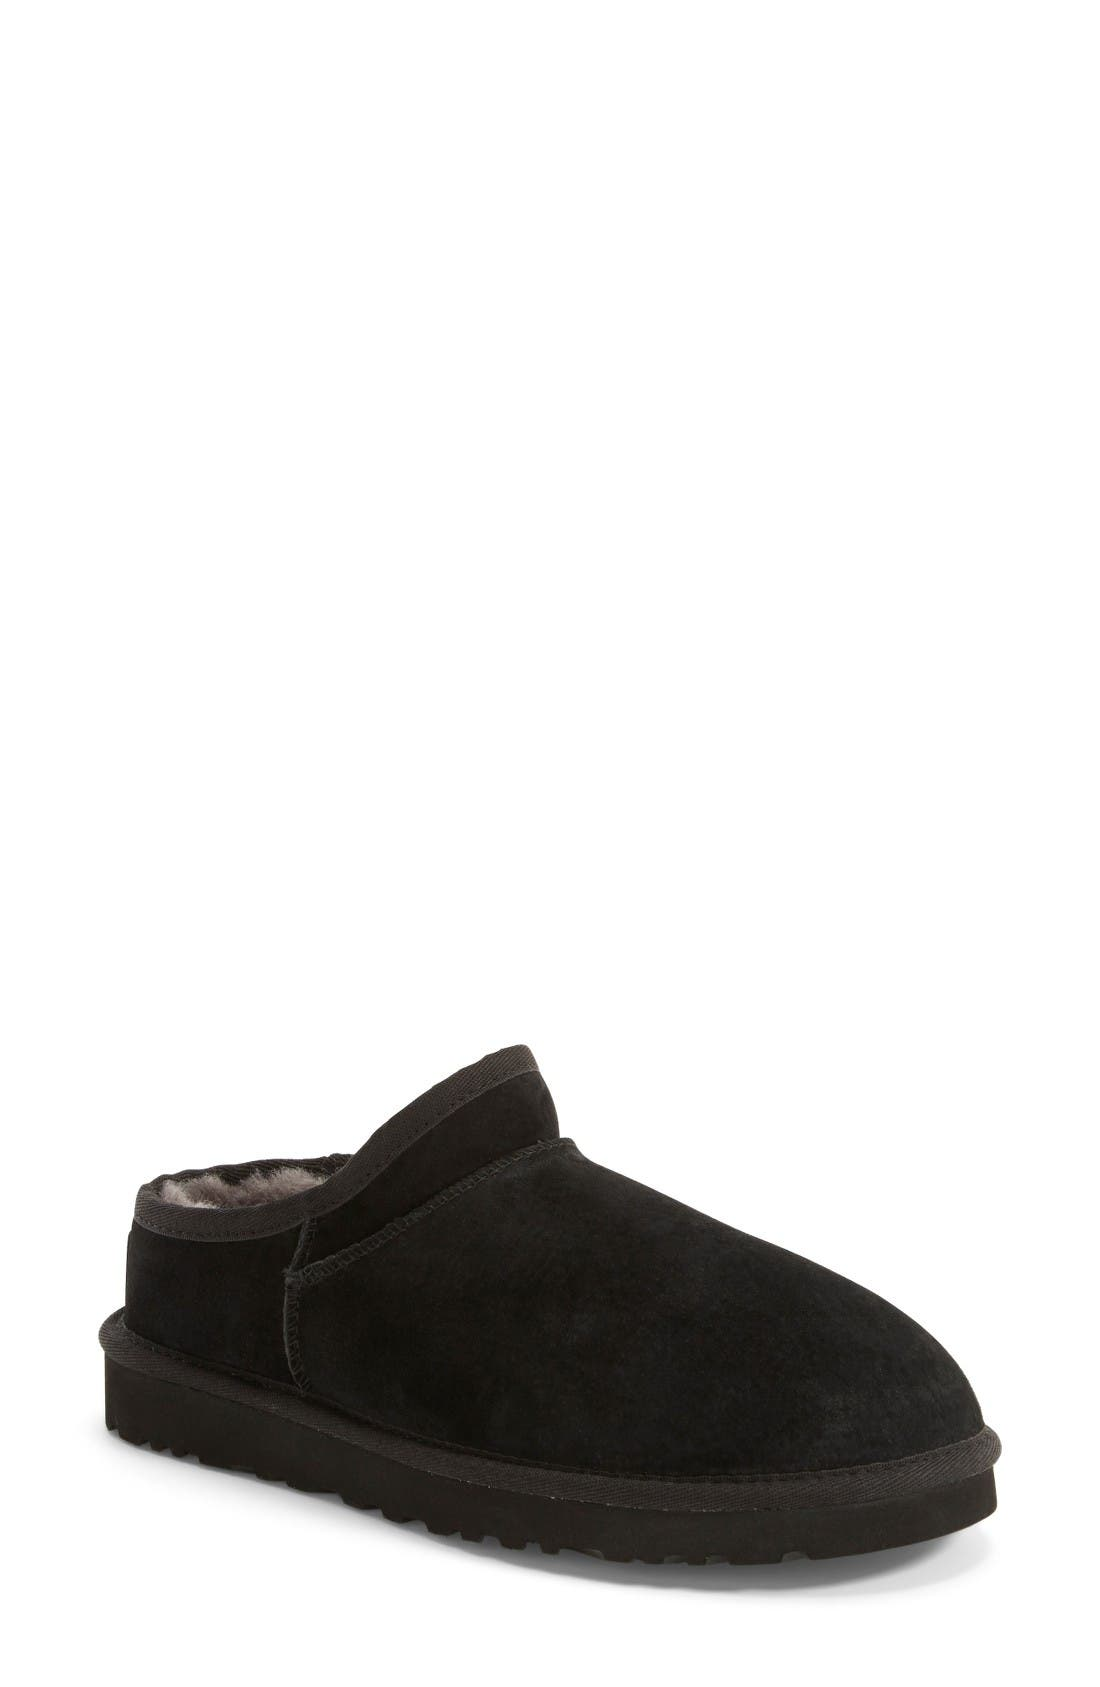 UGG<SUP>®</SUP> Classic Water Resistant Slipper, Main, color, 001